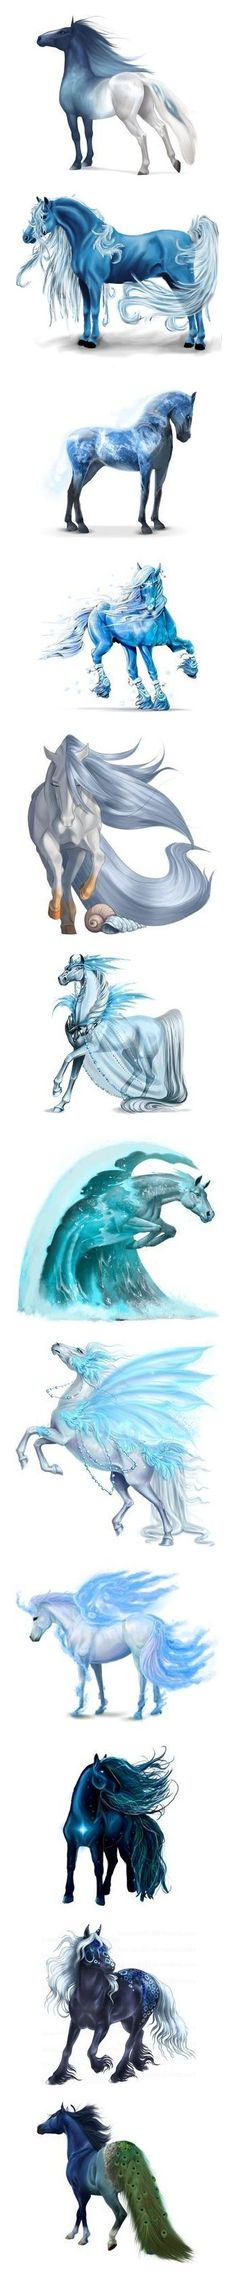 """""""Fantasy Horses"""" by nikki-kersey ❤ liked on Polyvore featuring animals, horse, howrse, pets, home, home decor, horse home decor, wall art, horse wall art and fantasy"""